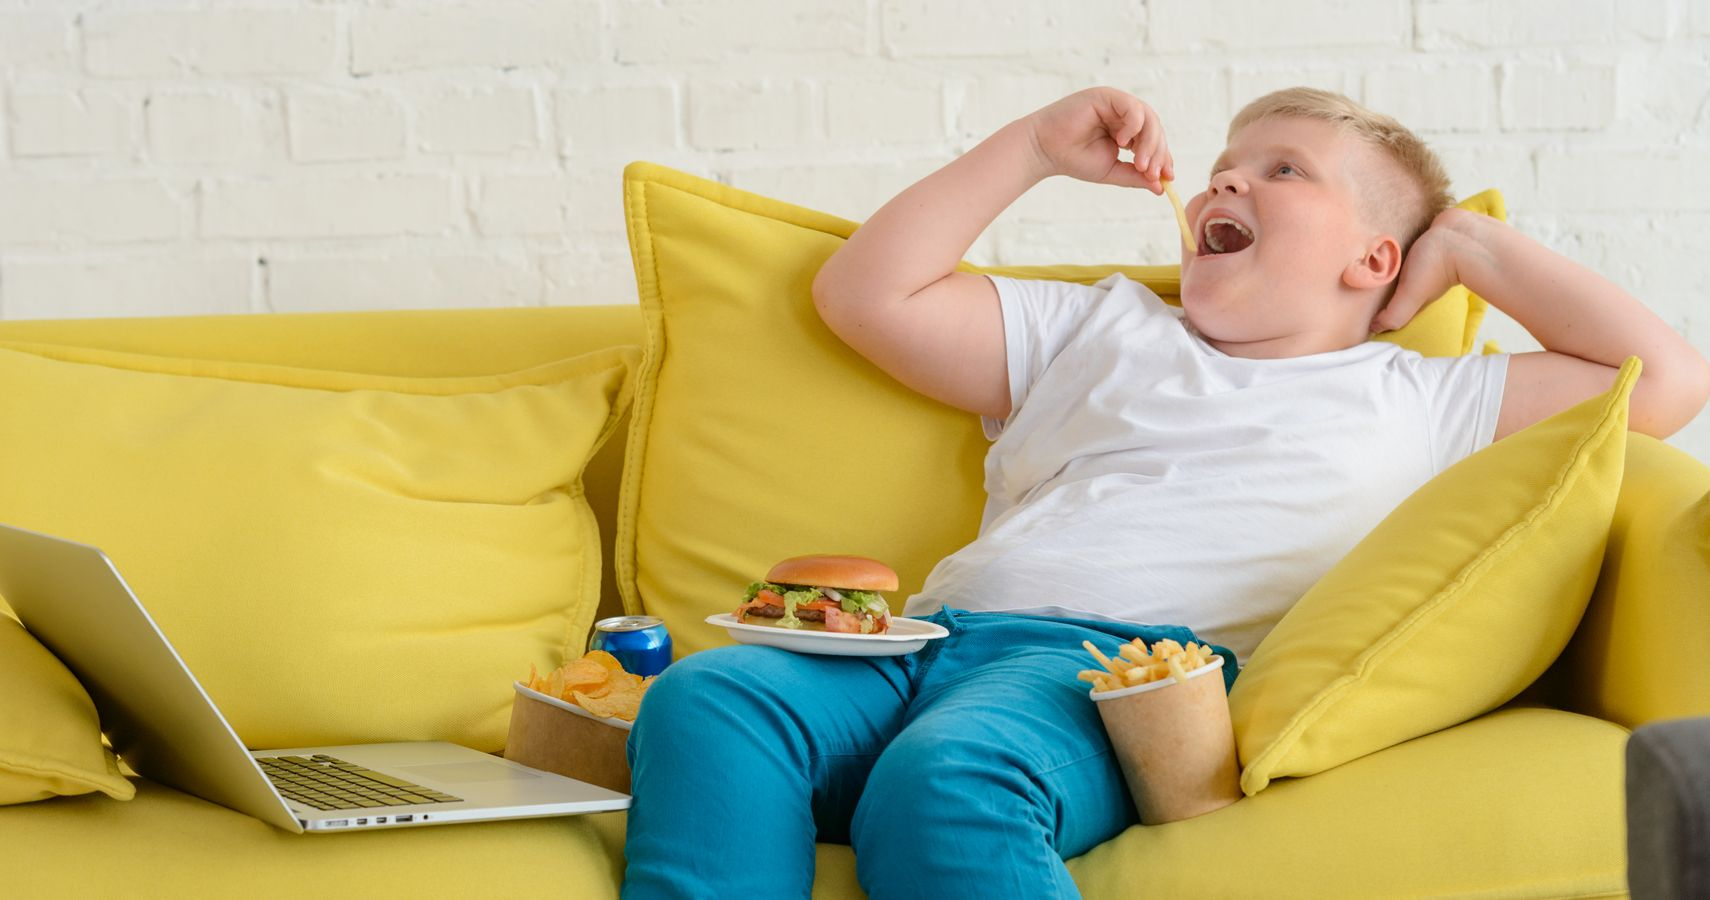 'Kid Influencers' Promote Unhealthy Food To Kids: Study